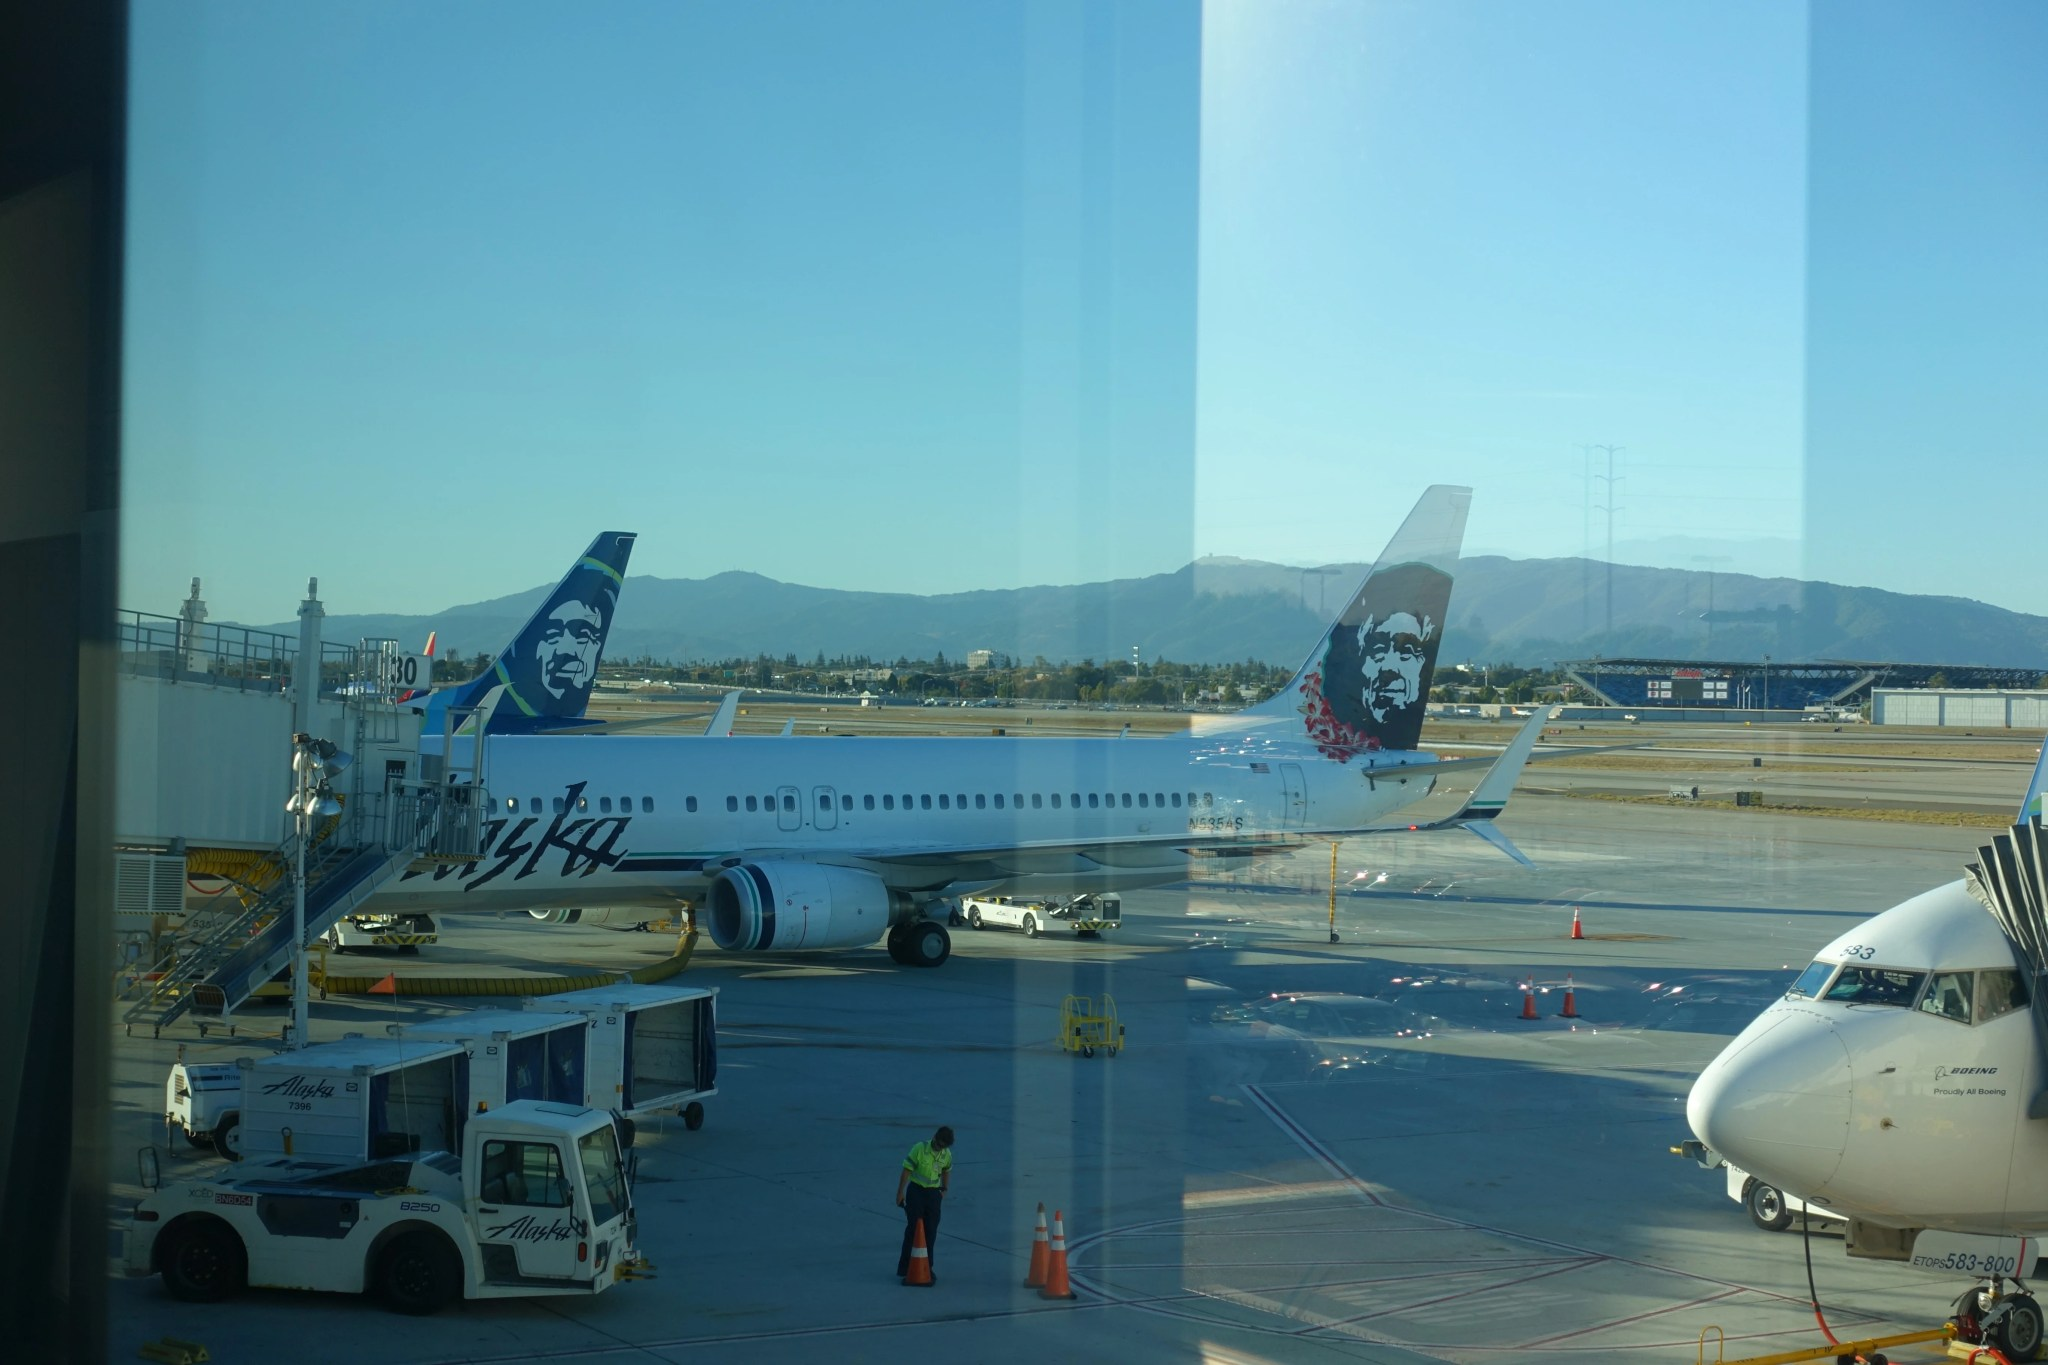 Review: Alaska (737-800) in Economy from SJC to LIH